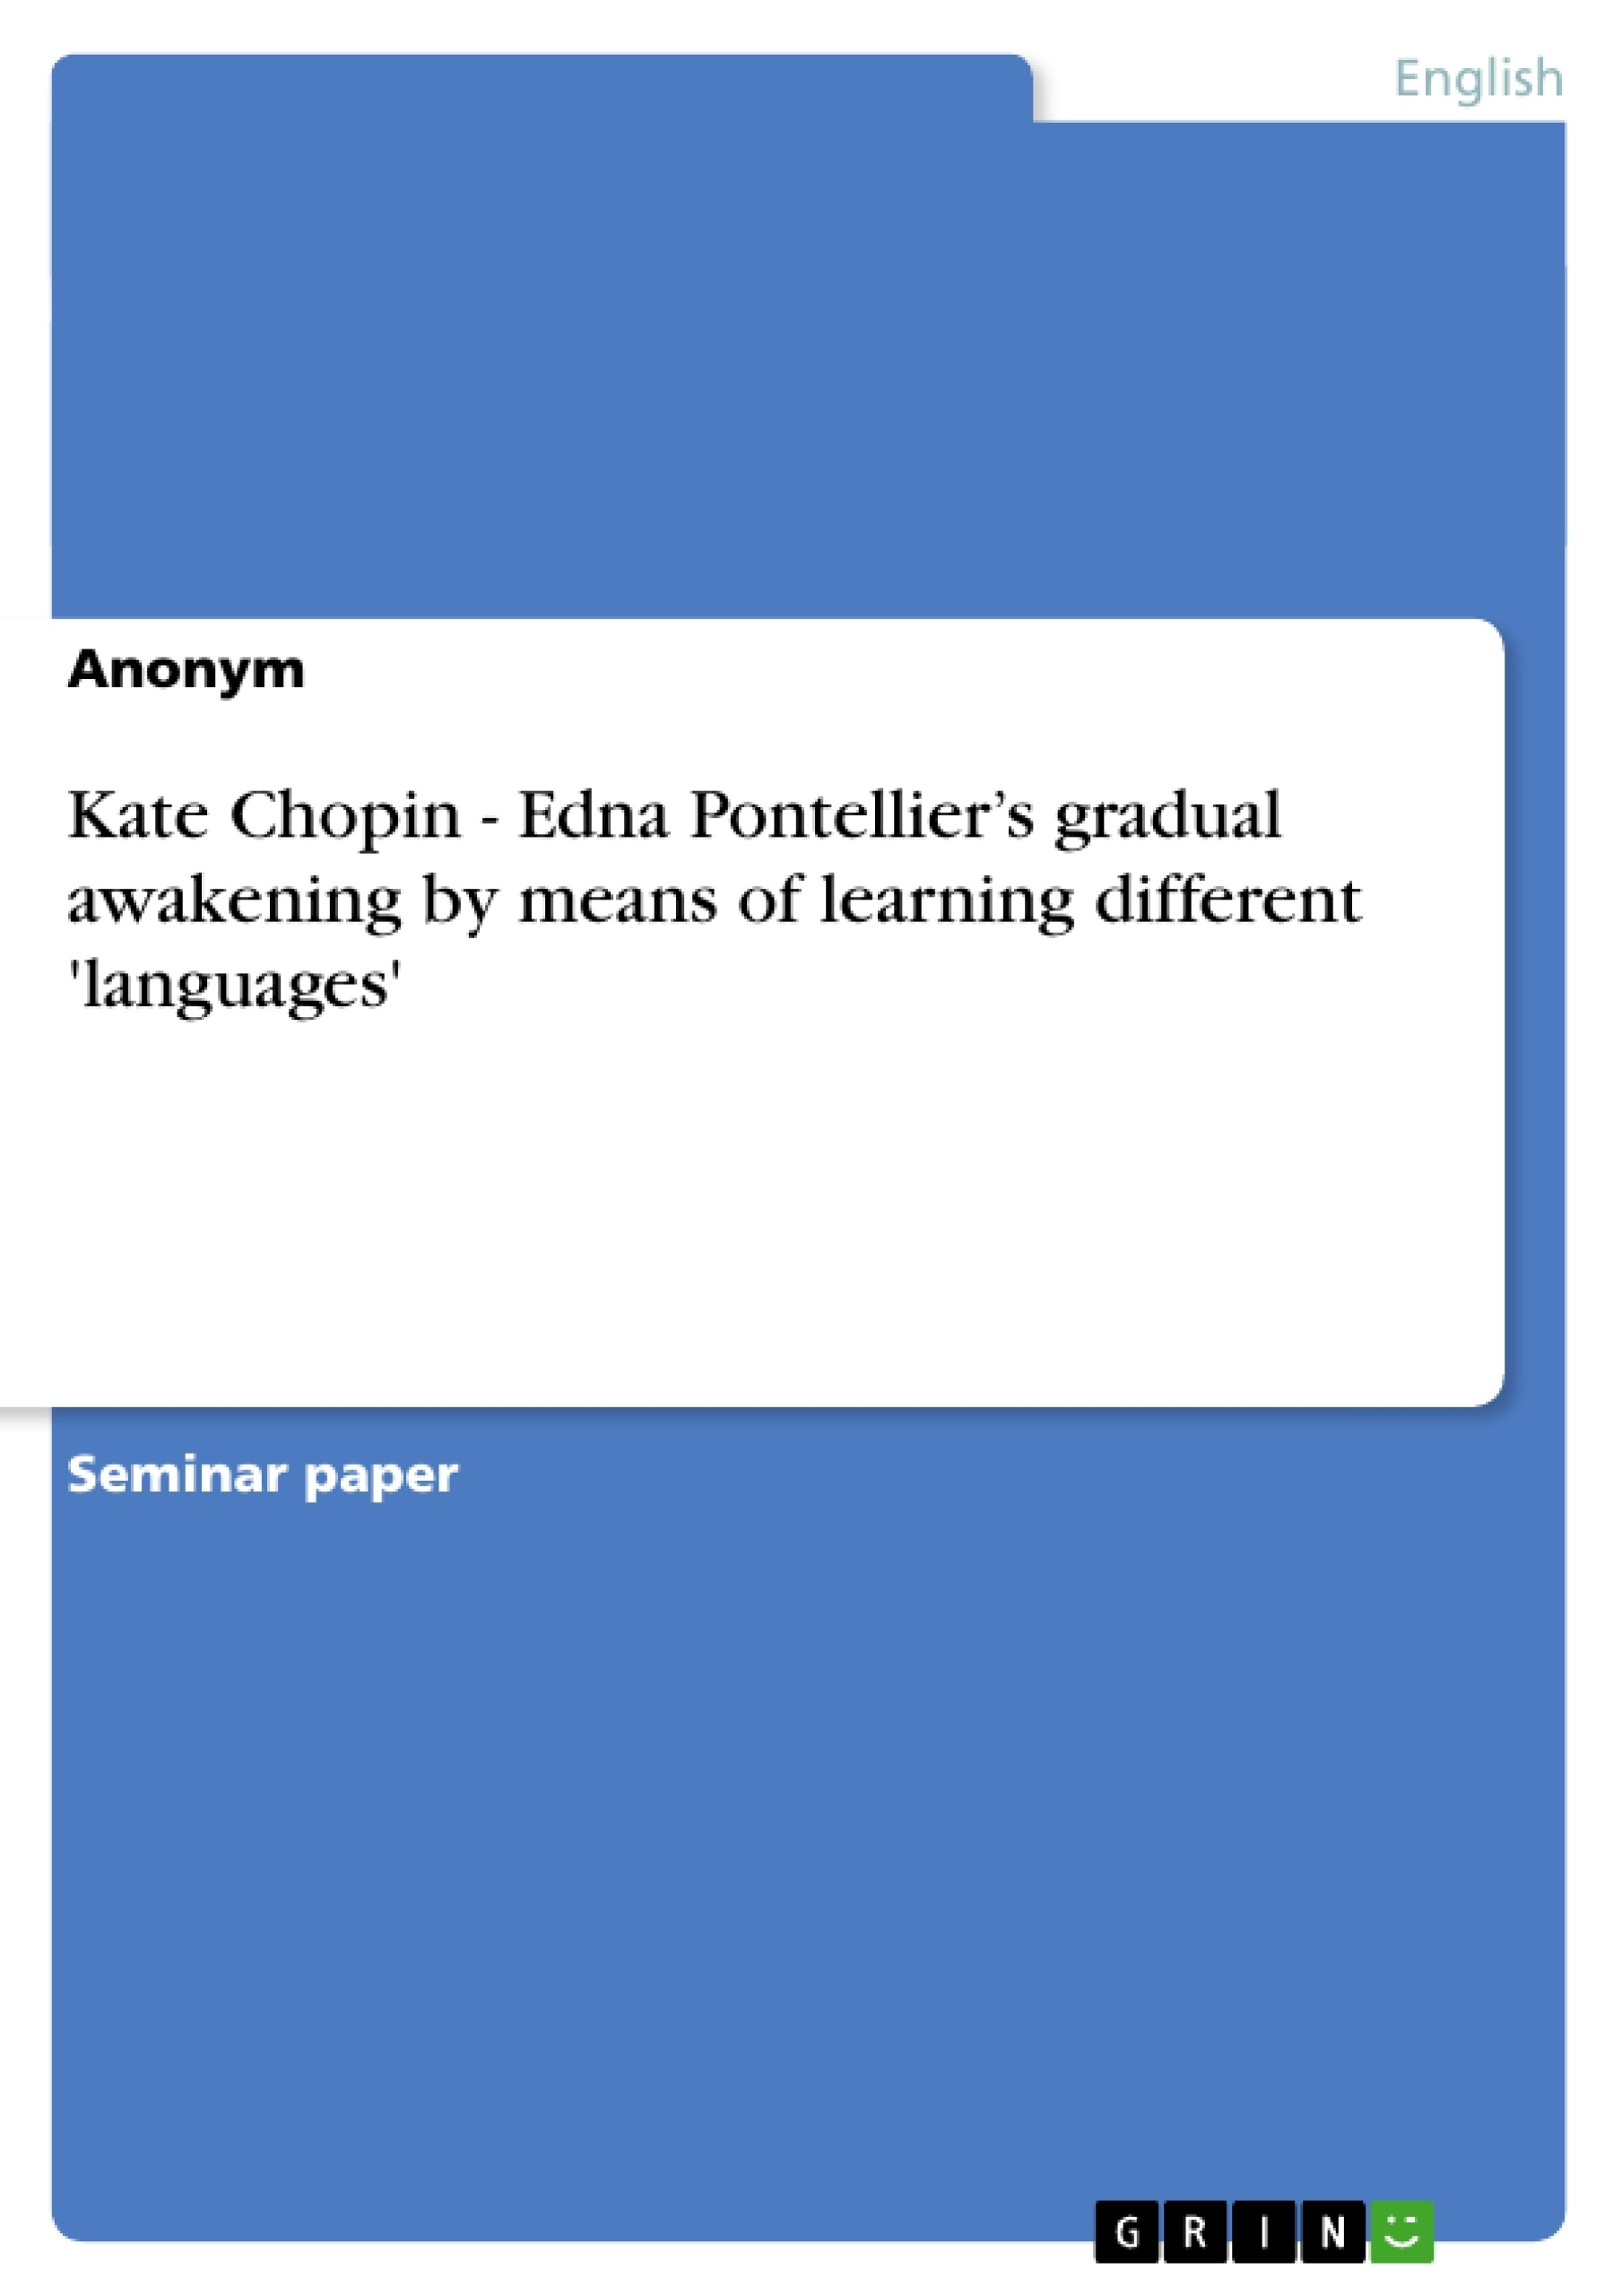 Title: Kate Chopin - Edna Pontellier's gradual awakening by means of learning different 'languages'